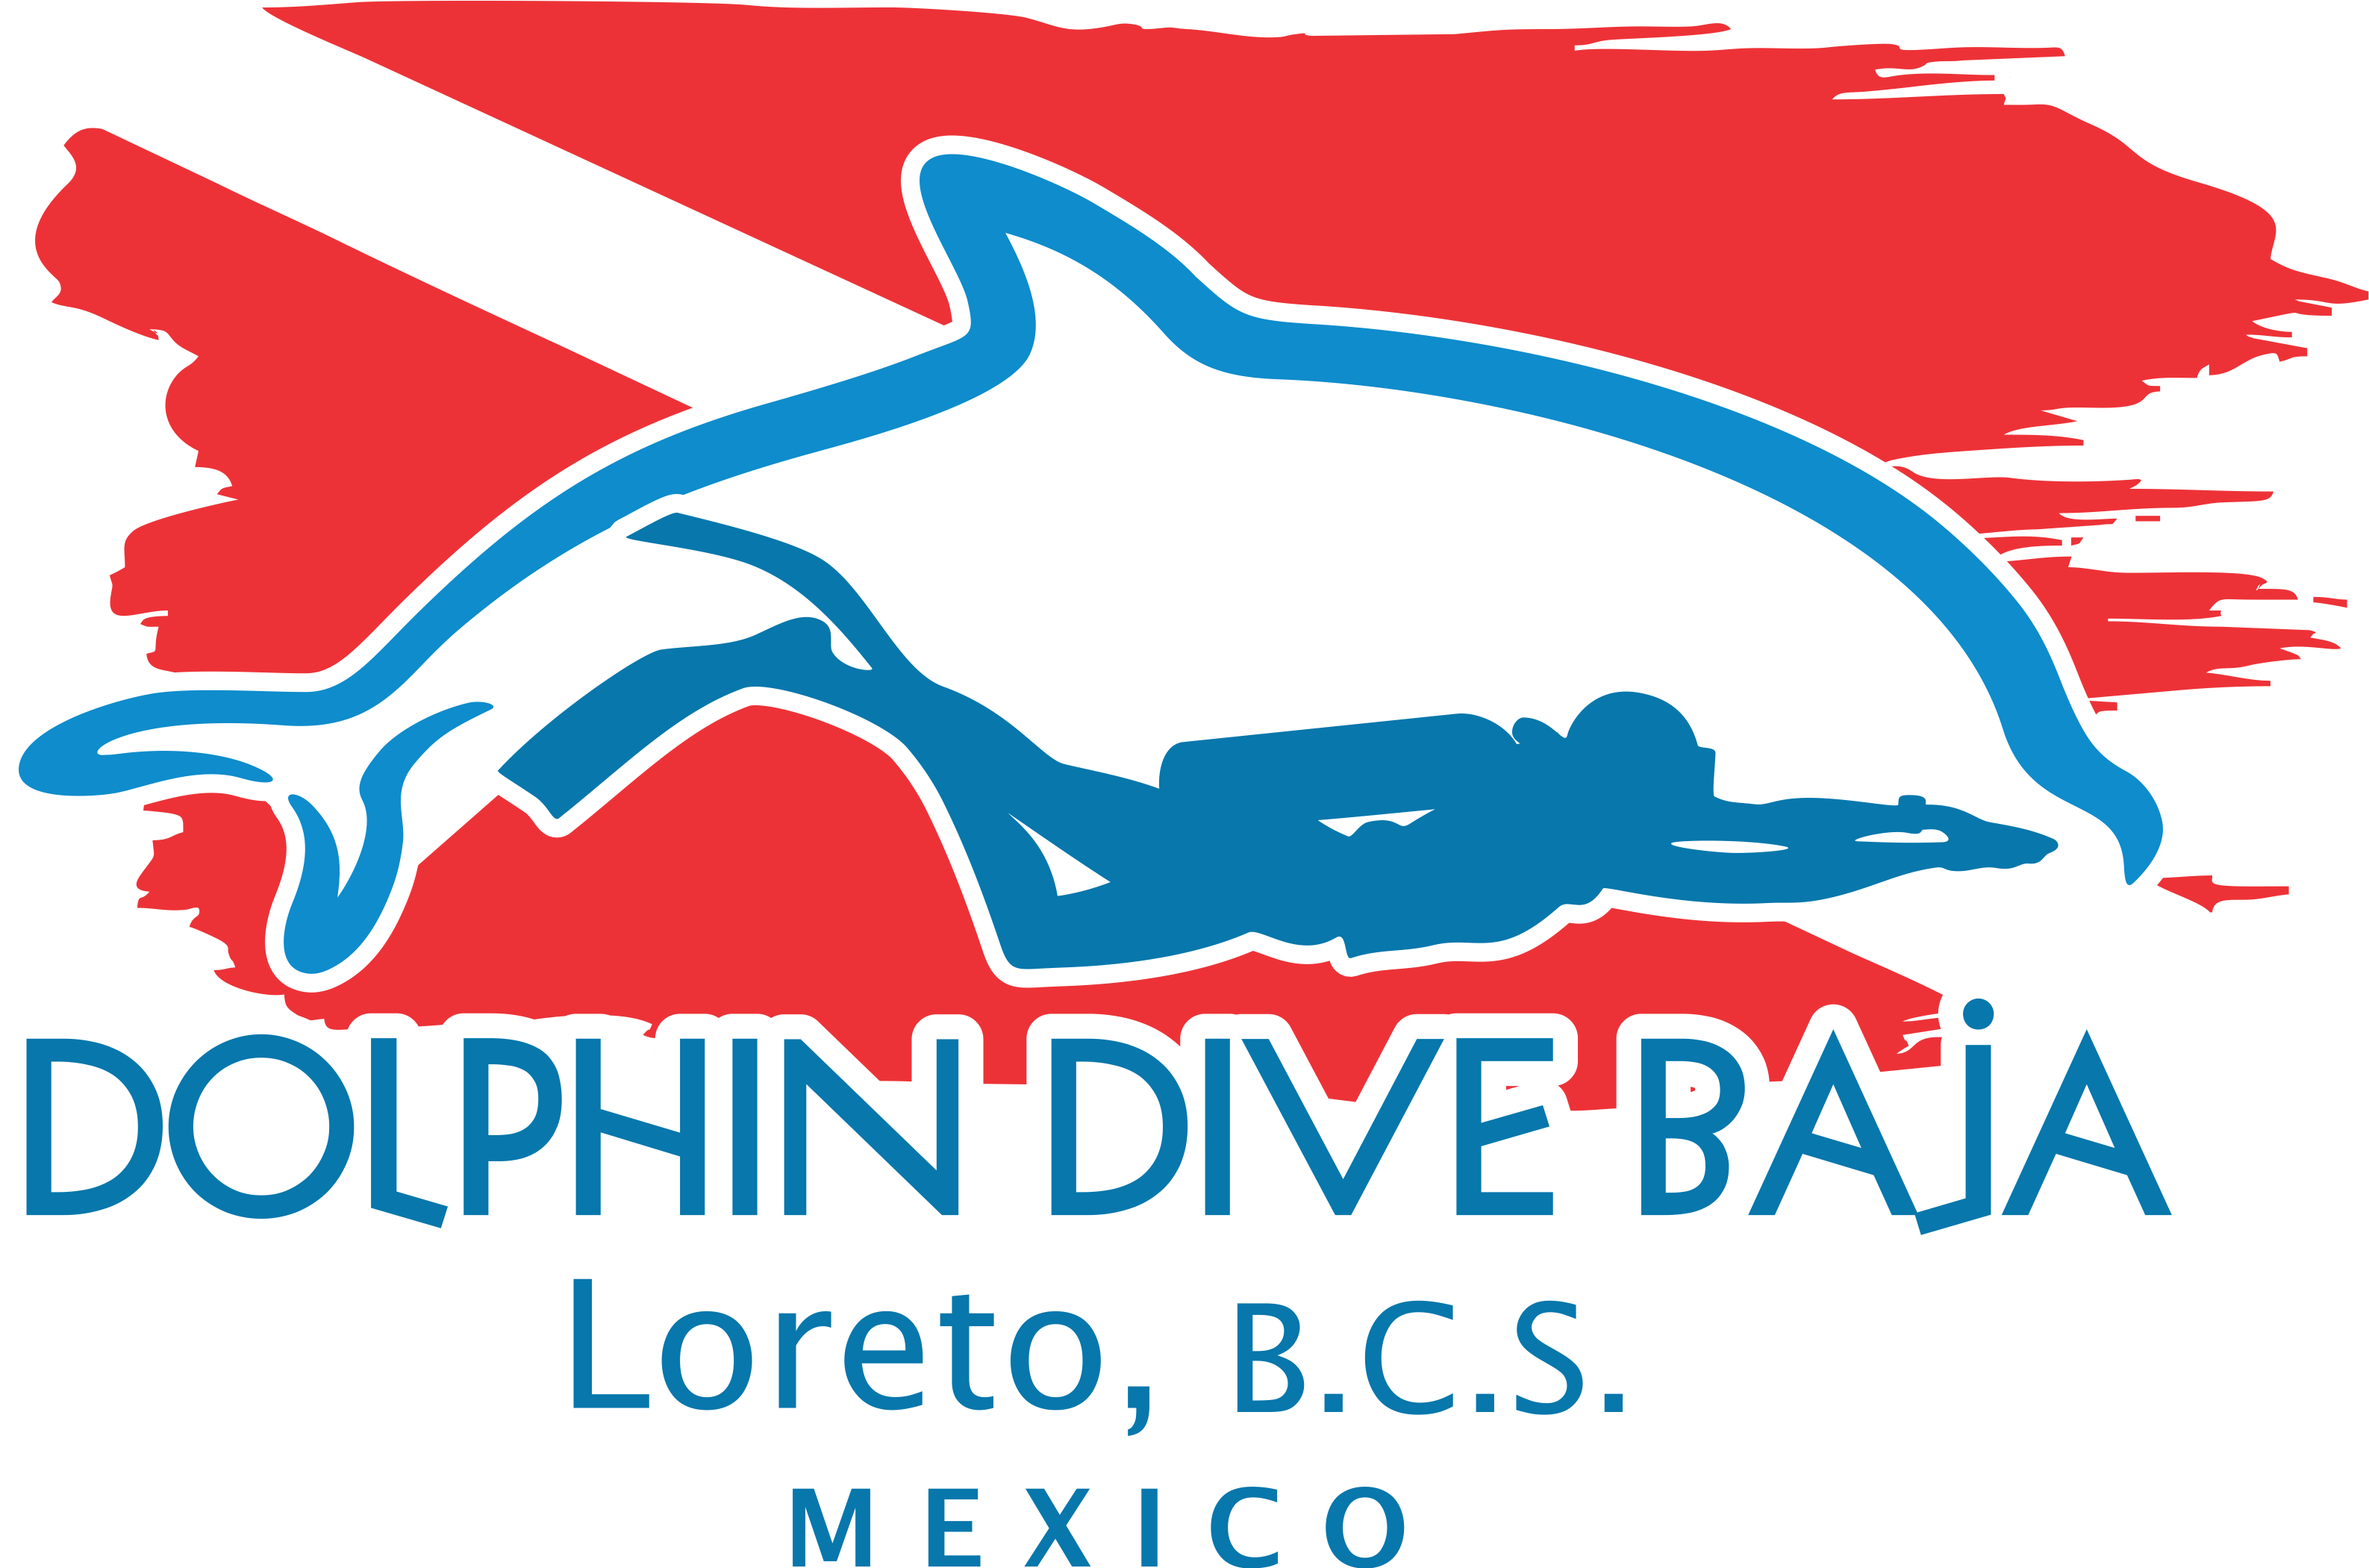 Loreto mexico home dive. Clipart dolphin diving dolphin